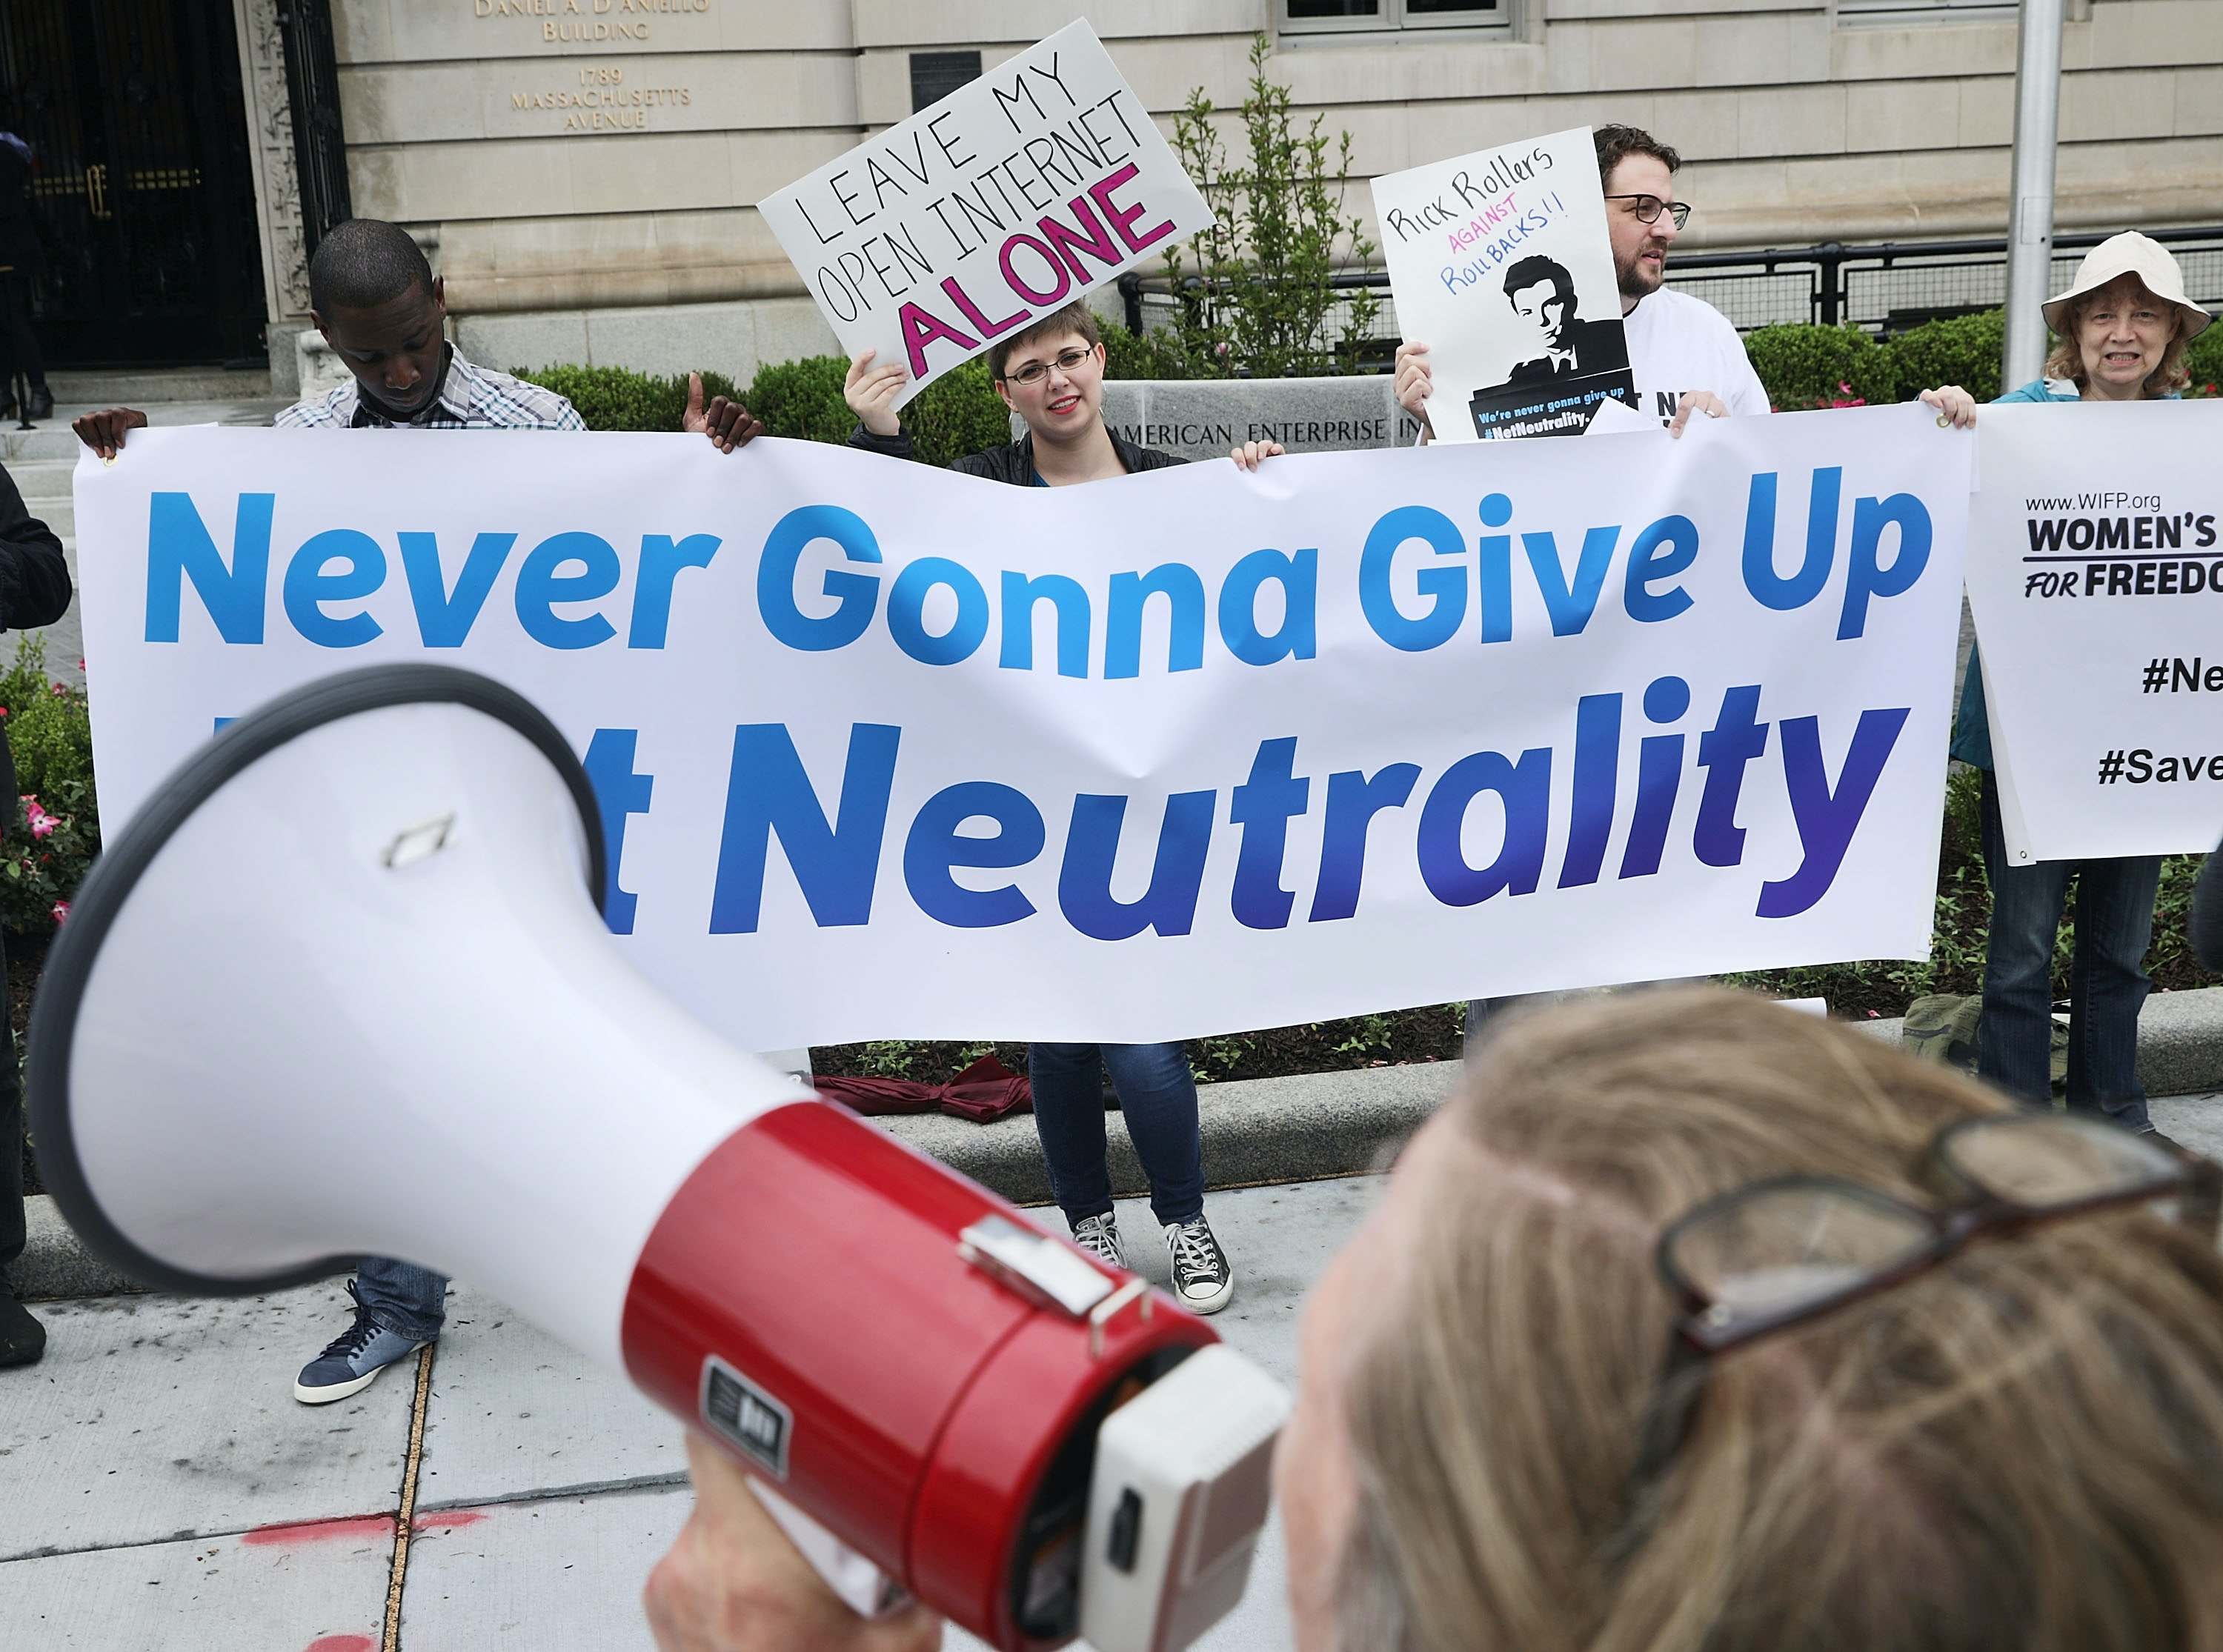 Northstate protesters support net neutrality